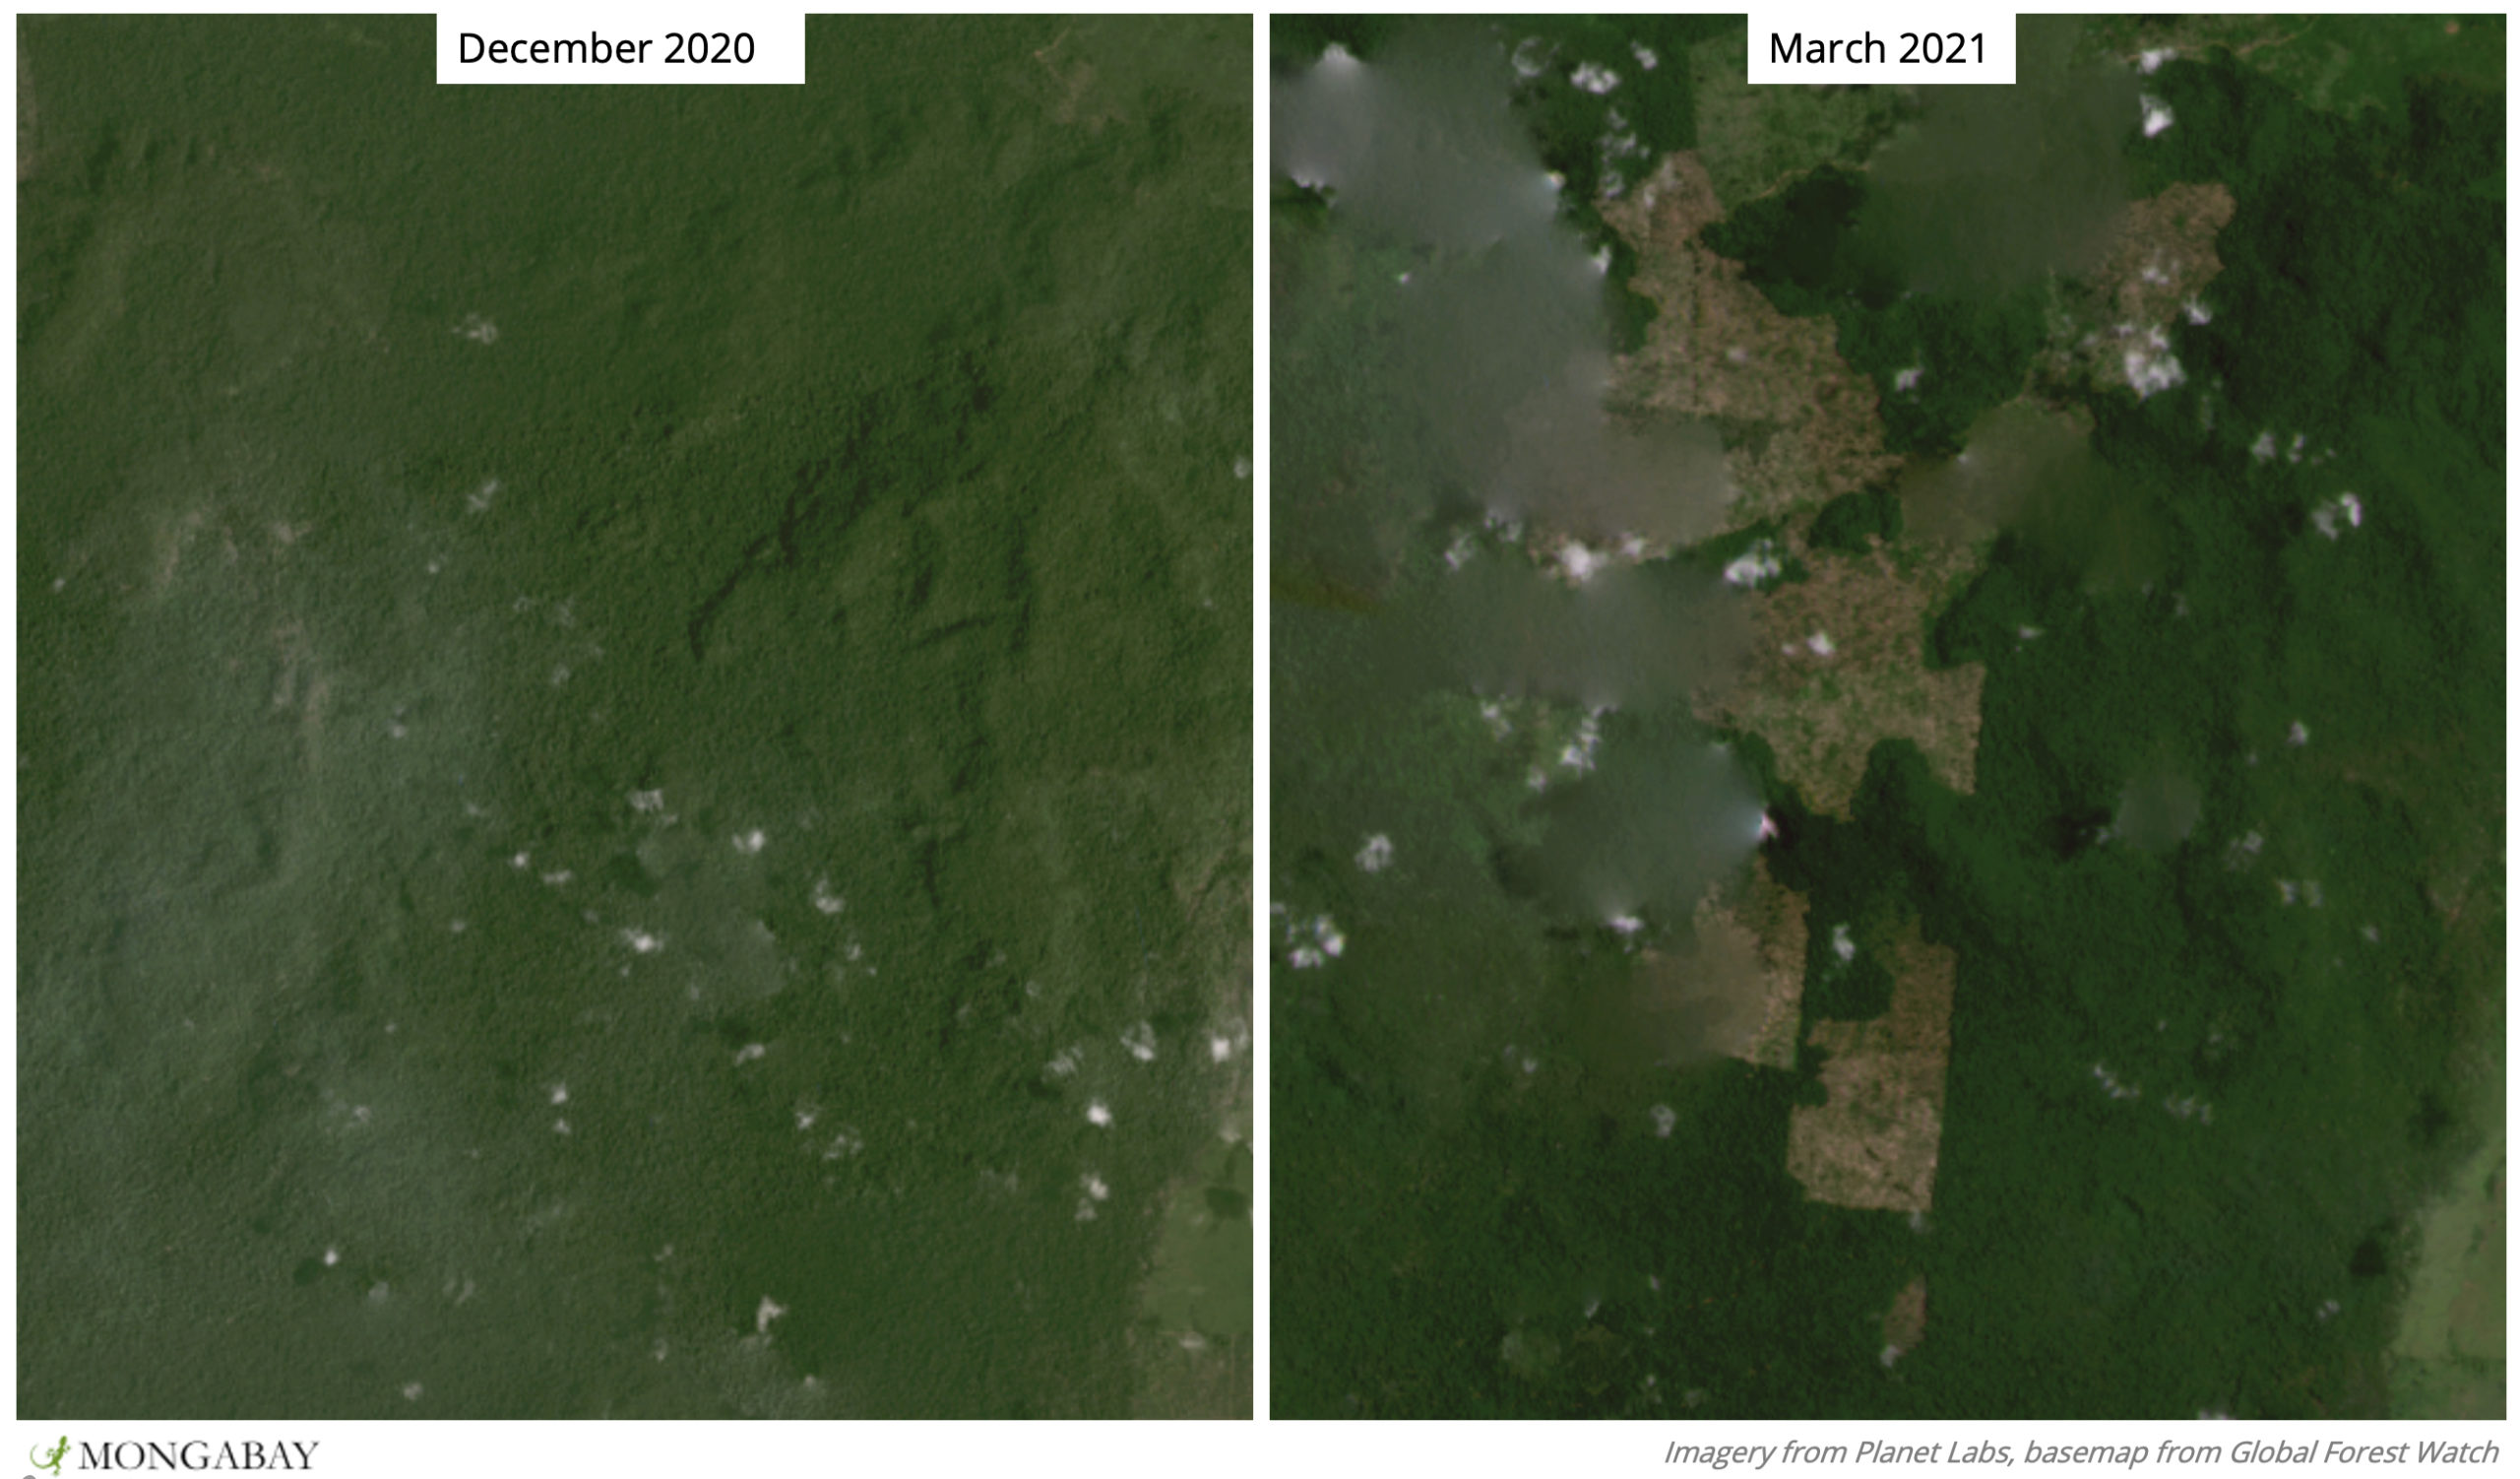 This area appears to have been cleared earlier this year, and is near Triunfo do Xingu's border with the Terra do Meio Ecological Station.